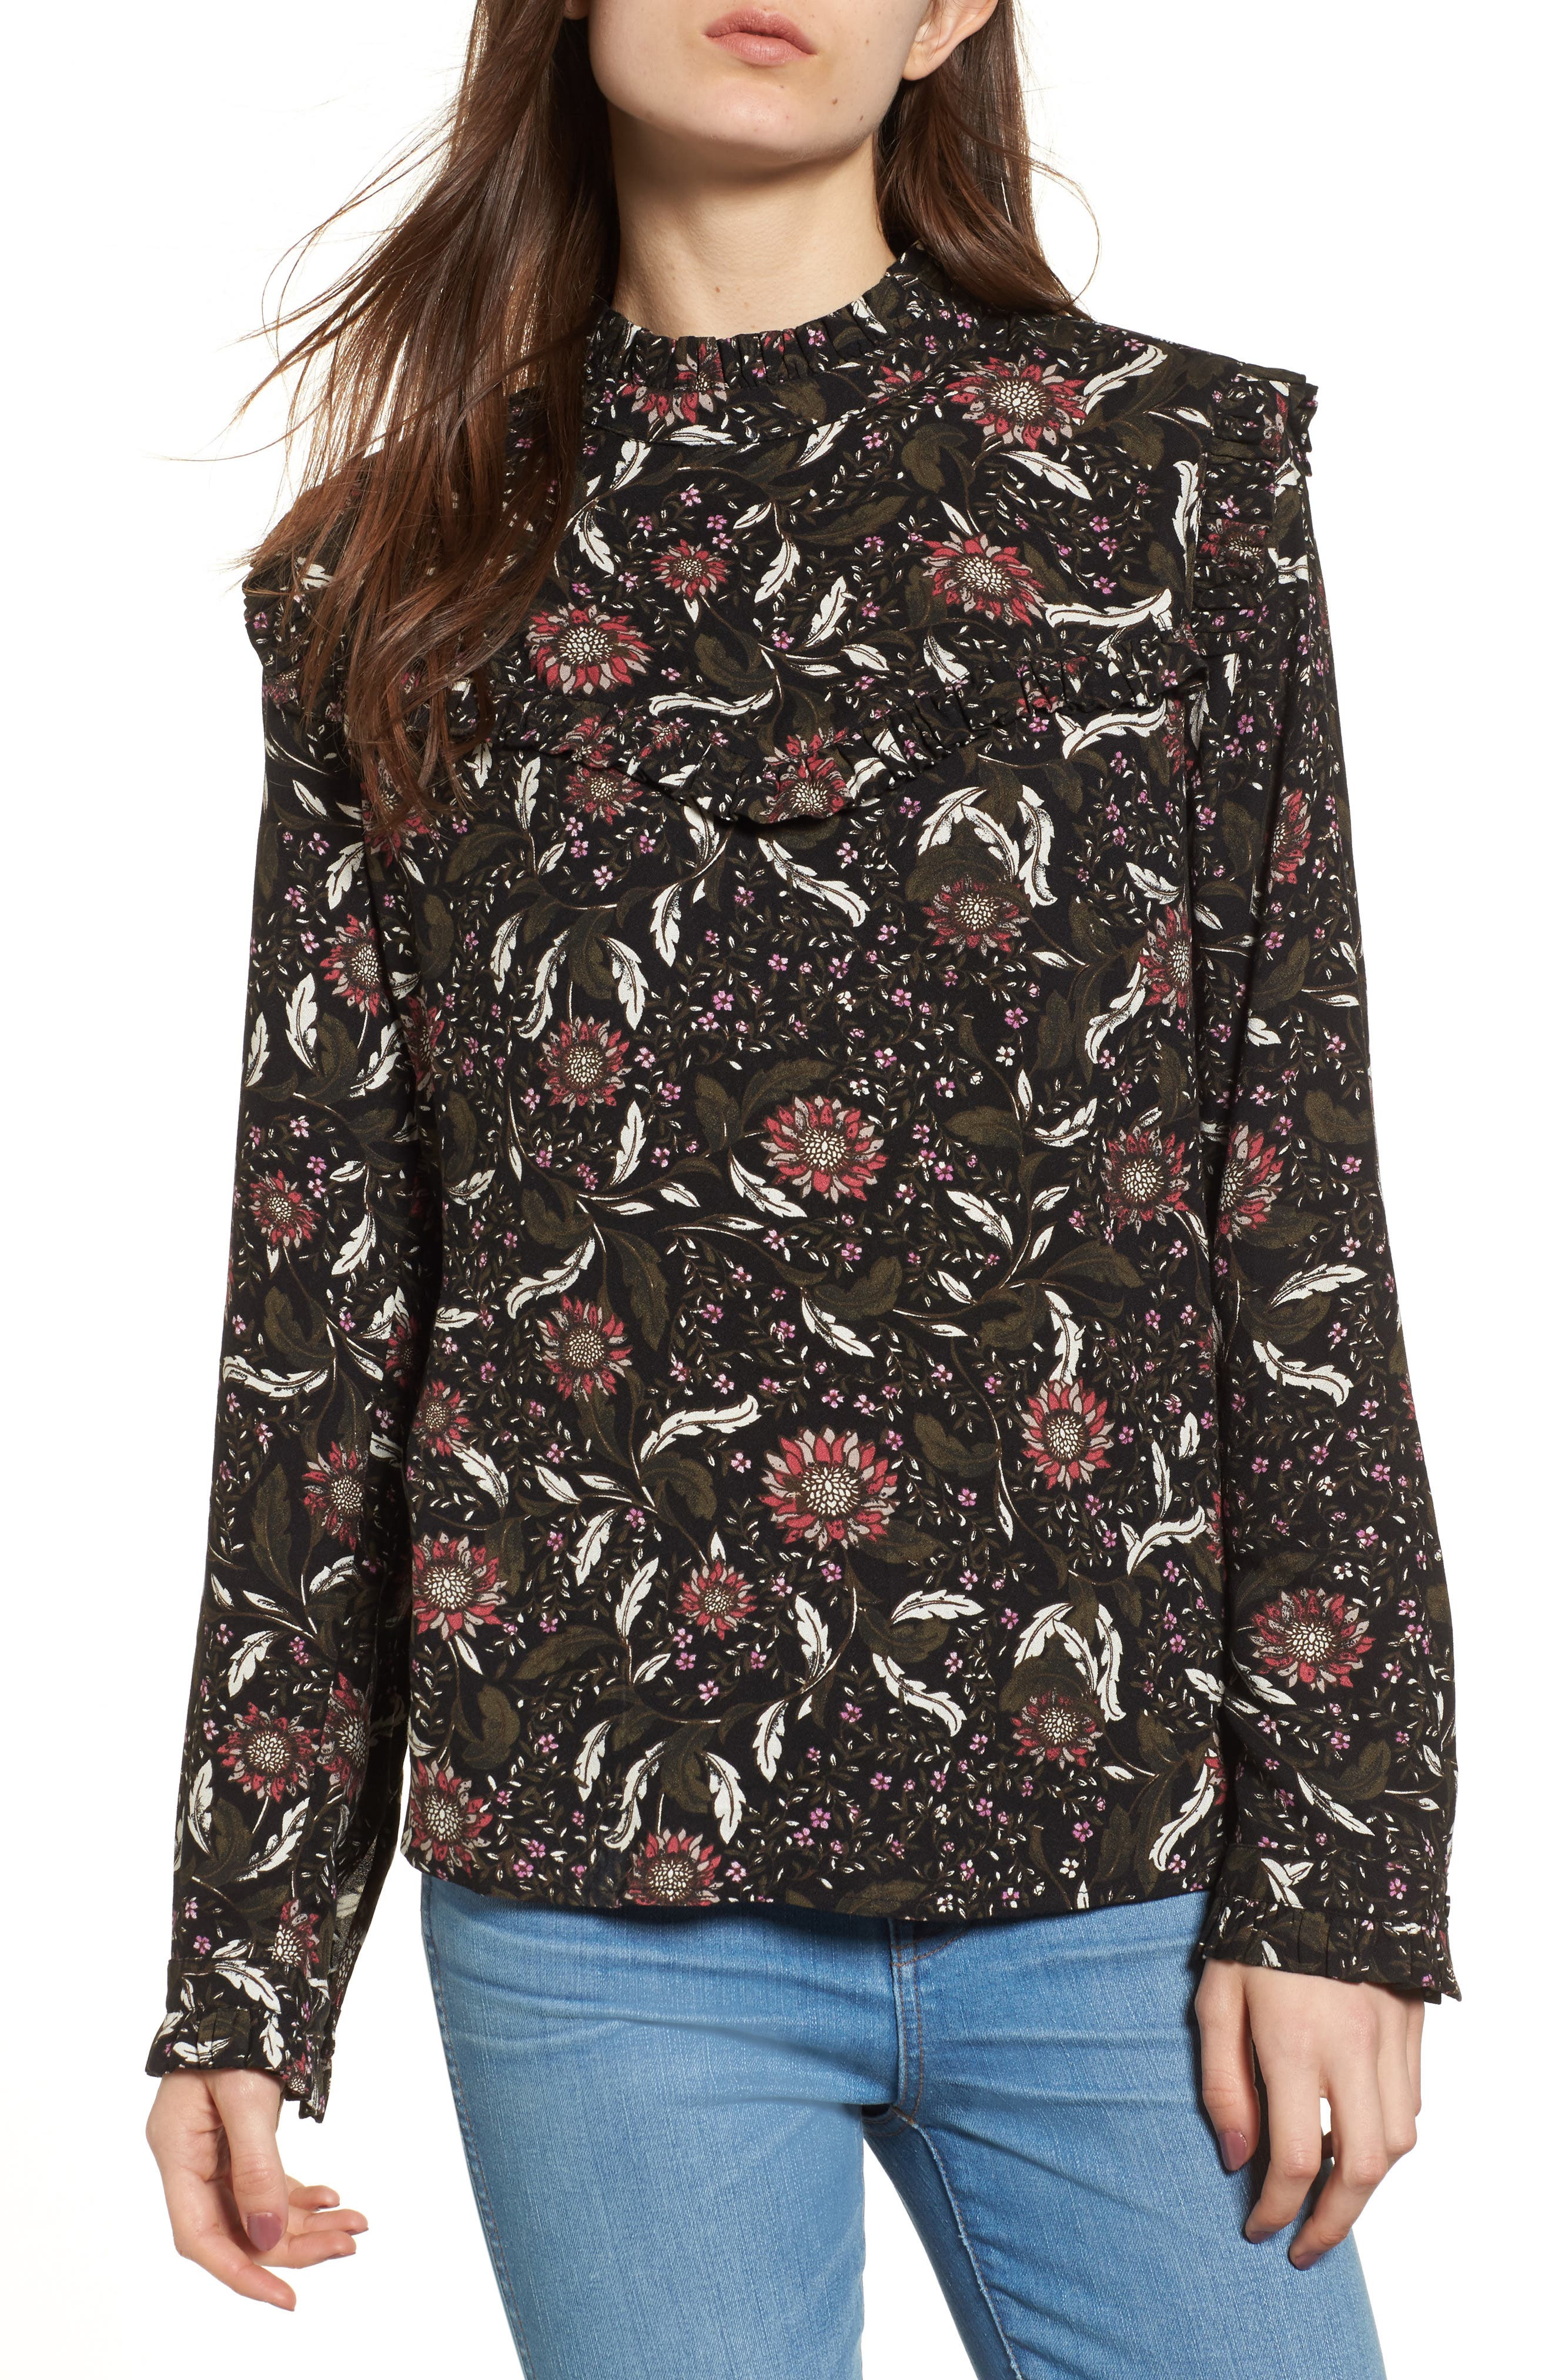 Ruffle Top,                         Main,                         color, Black Crowded Floral